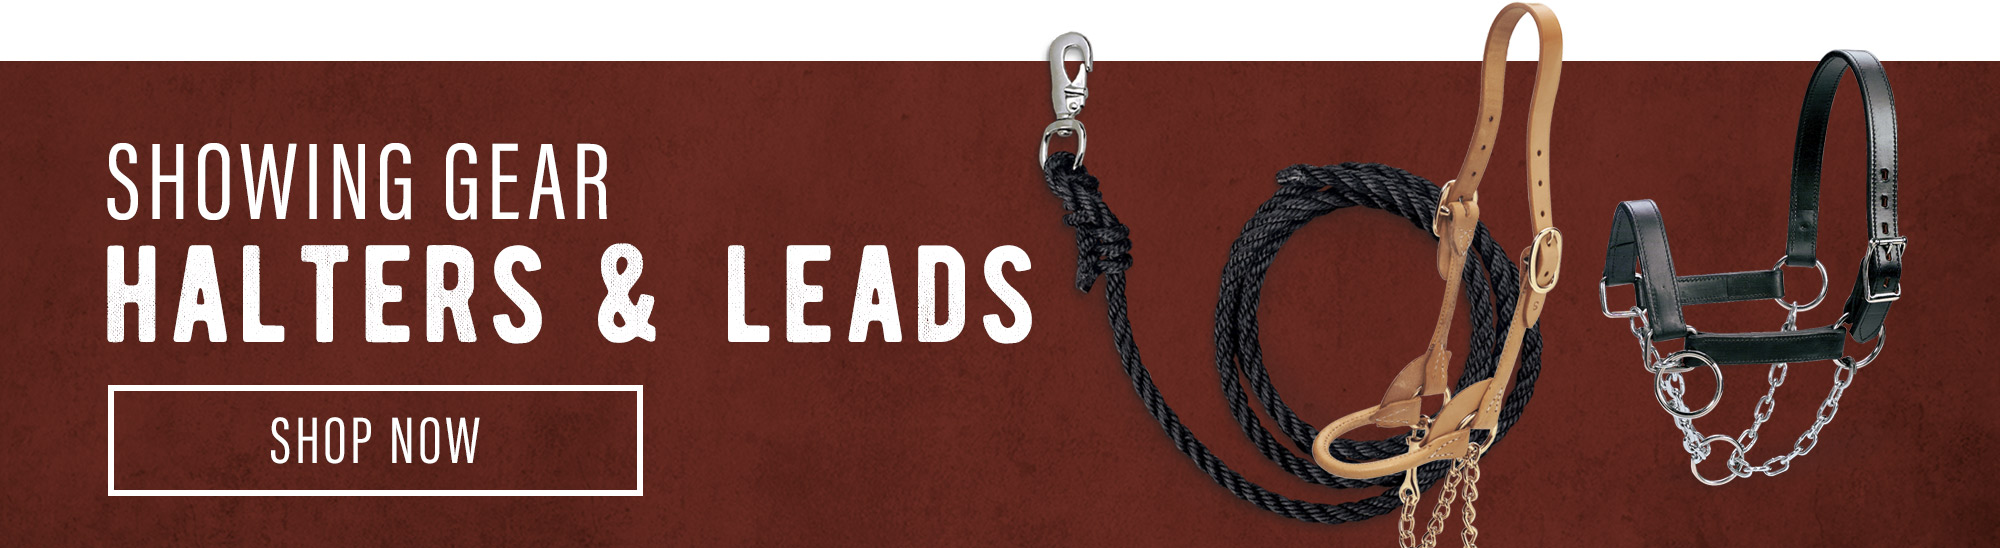 Showing Gear Halters and Leads – Shop Now